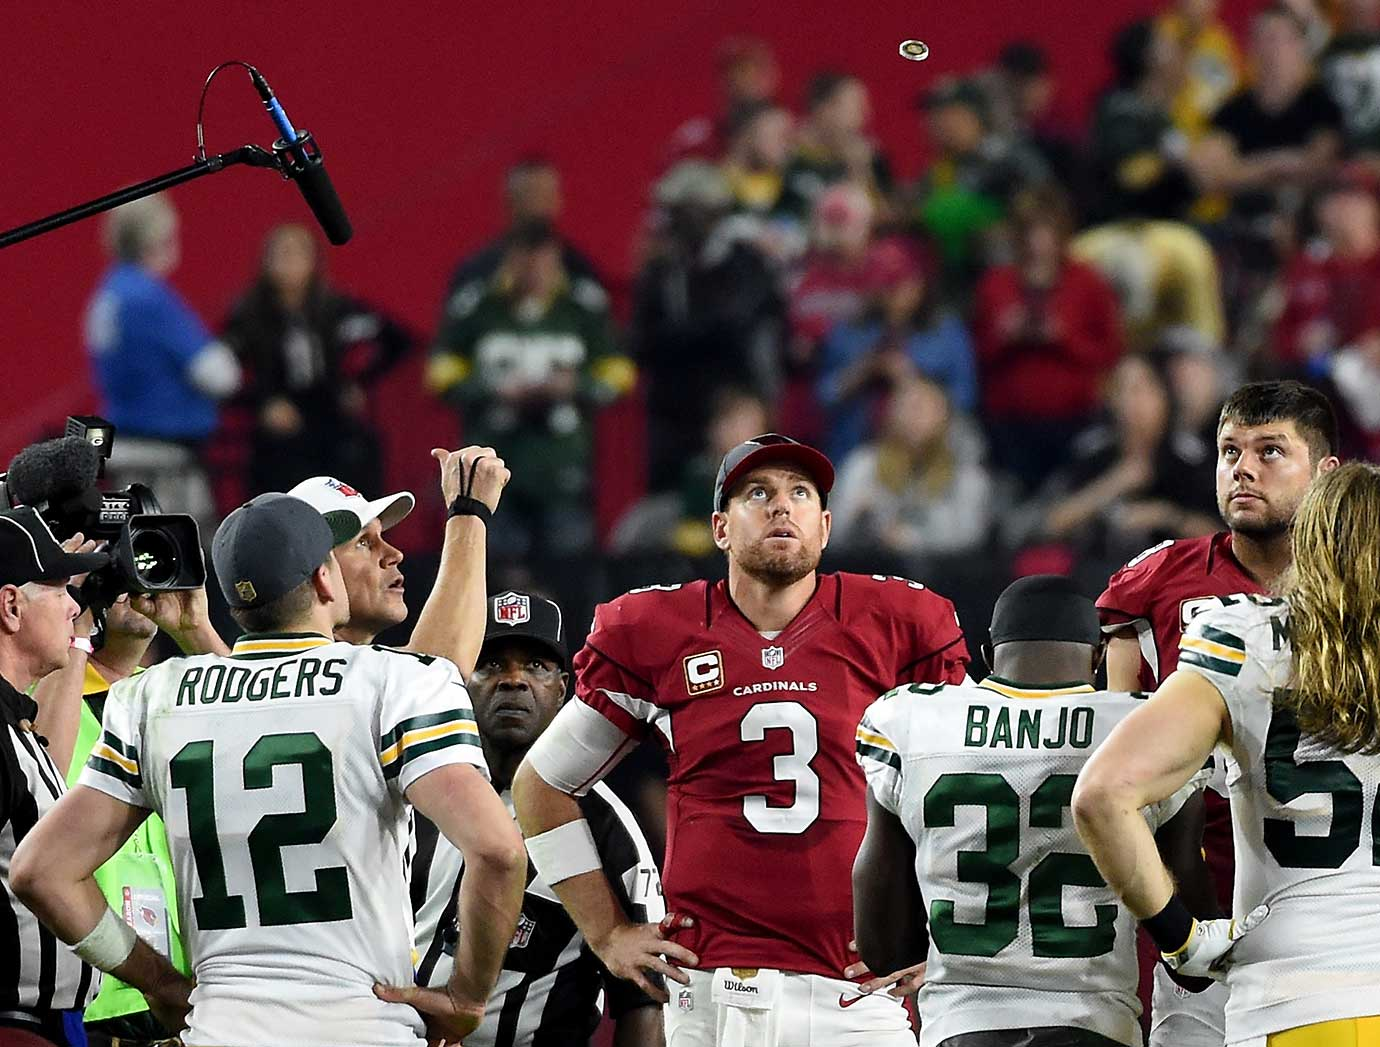 Carson Palmer and Aaron Rodgers watch the overtime coin toss in an NFC divisional playoff game. The Cardinals won the re-toss (the coin didn't flip the first time) and went on to score a touchdown on their first drive to survive 26-20 to give Palmer his first career playoff victory.